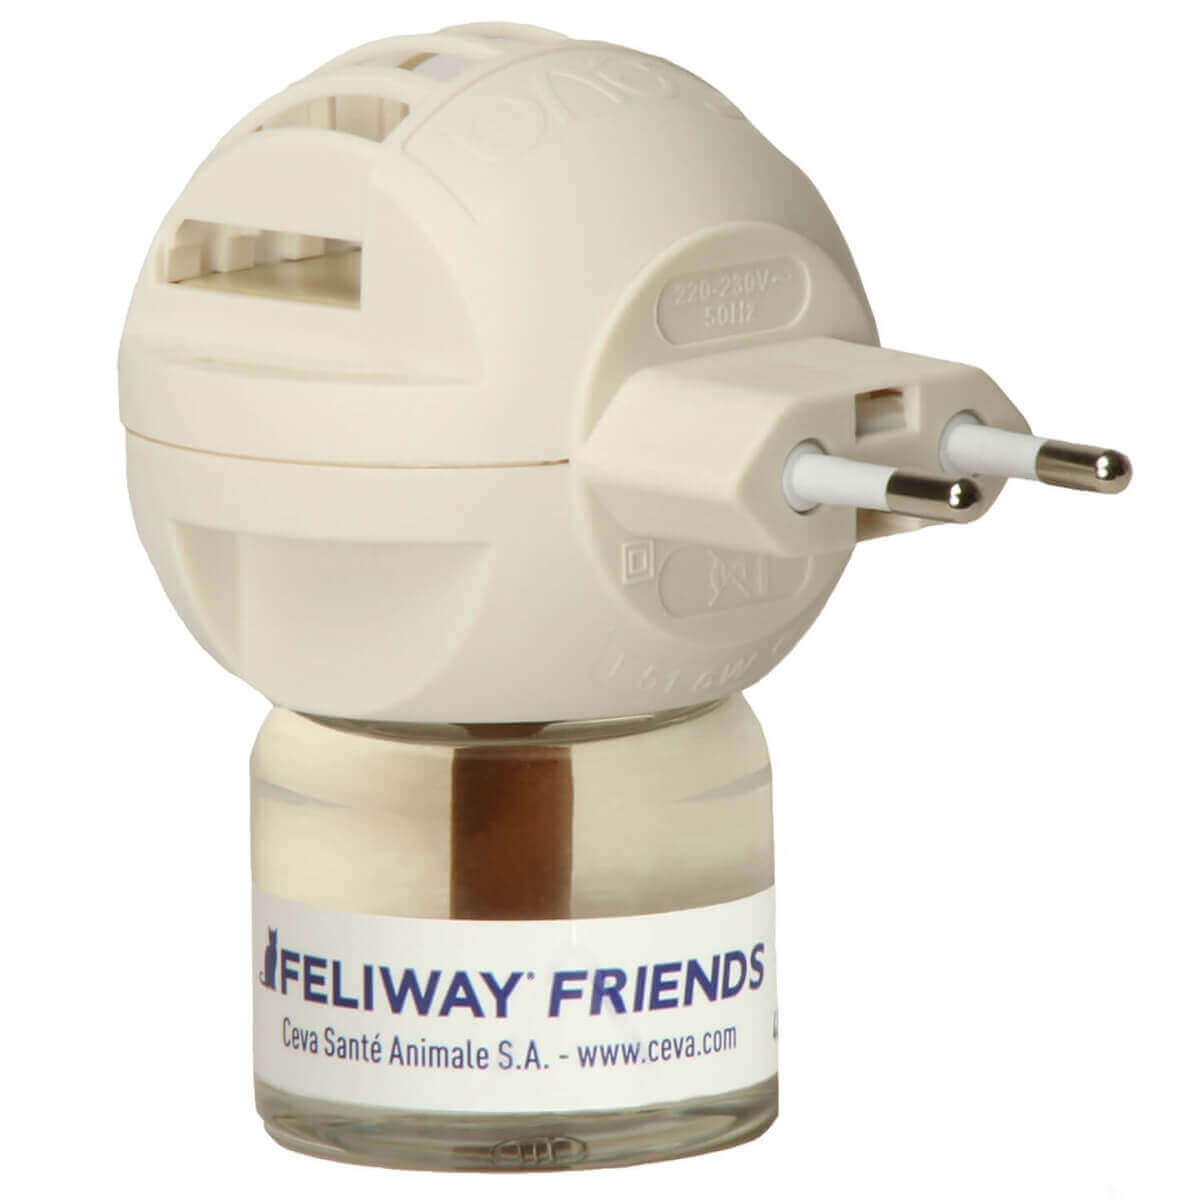 FELIWAY Friends Diffuseur - Facilite la cohabitation entre chats_5